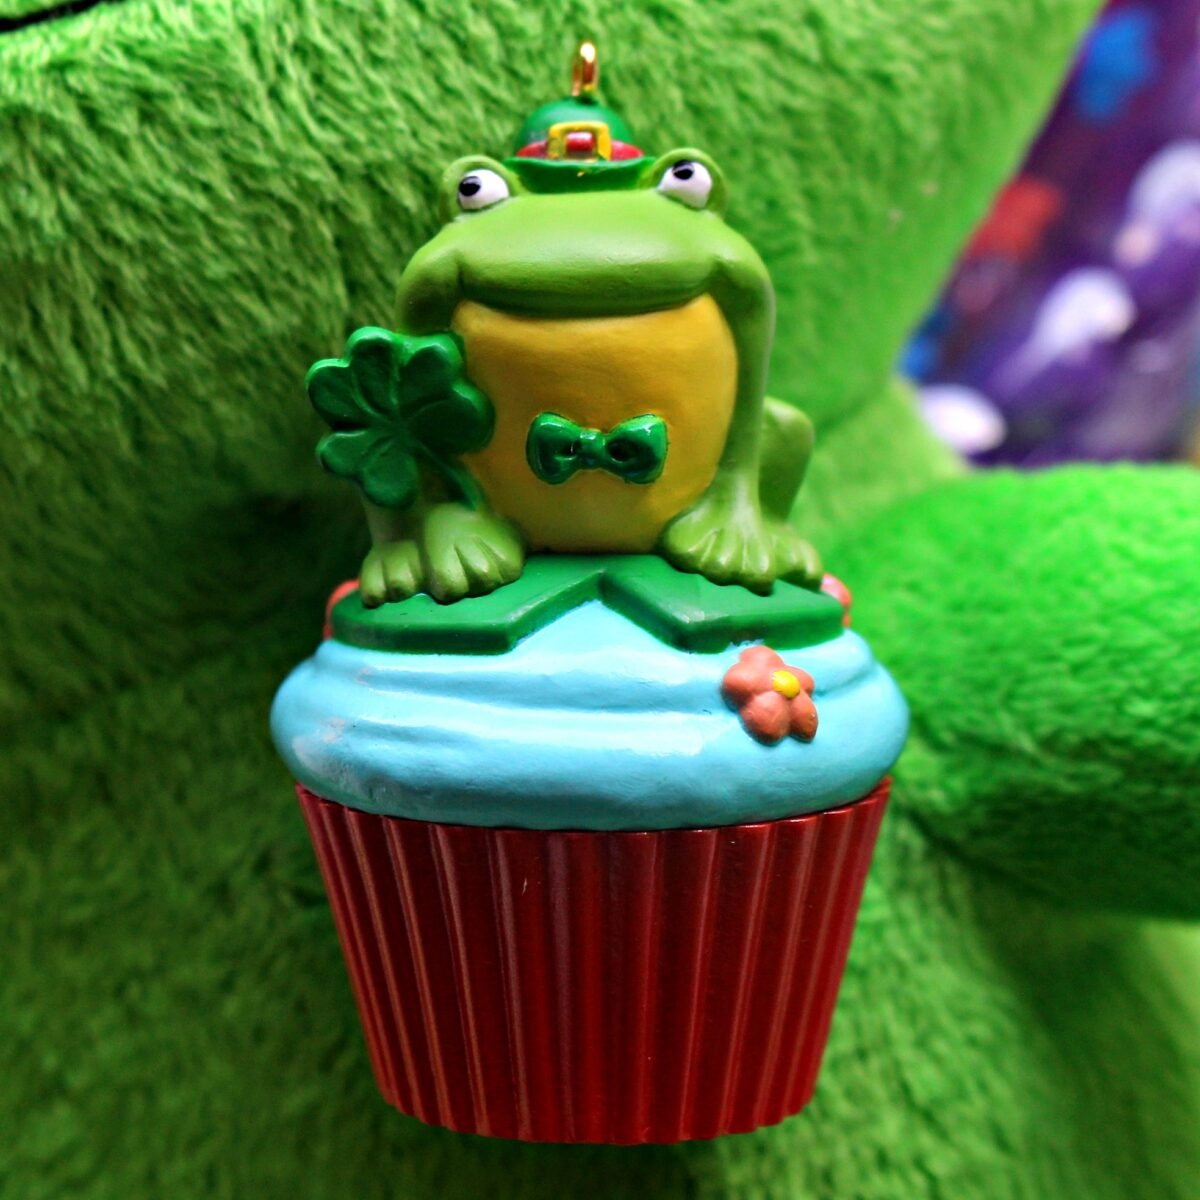 An ornament of a frog sitting on a blue frosted cupcake in a red cupcake holder.